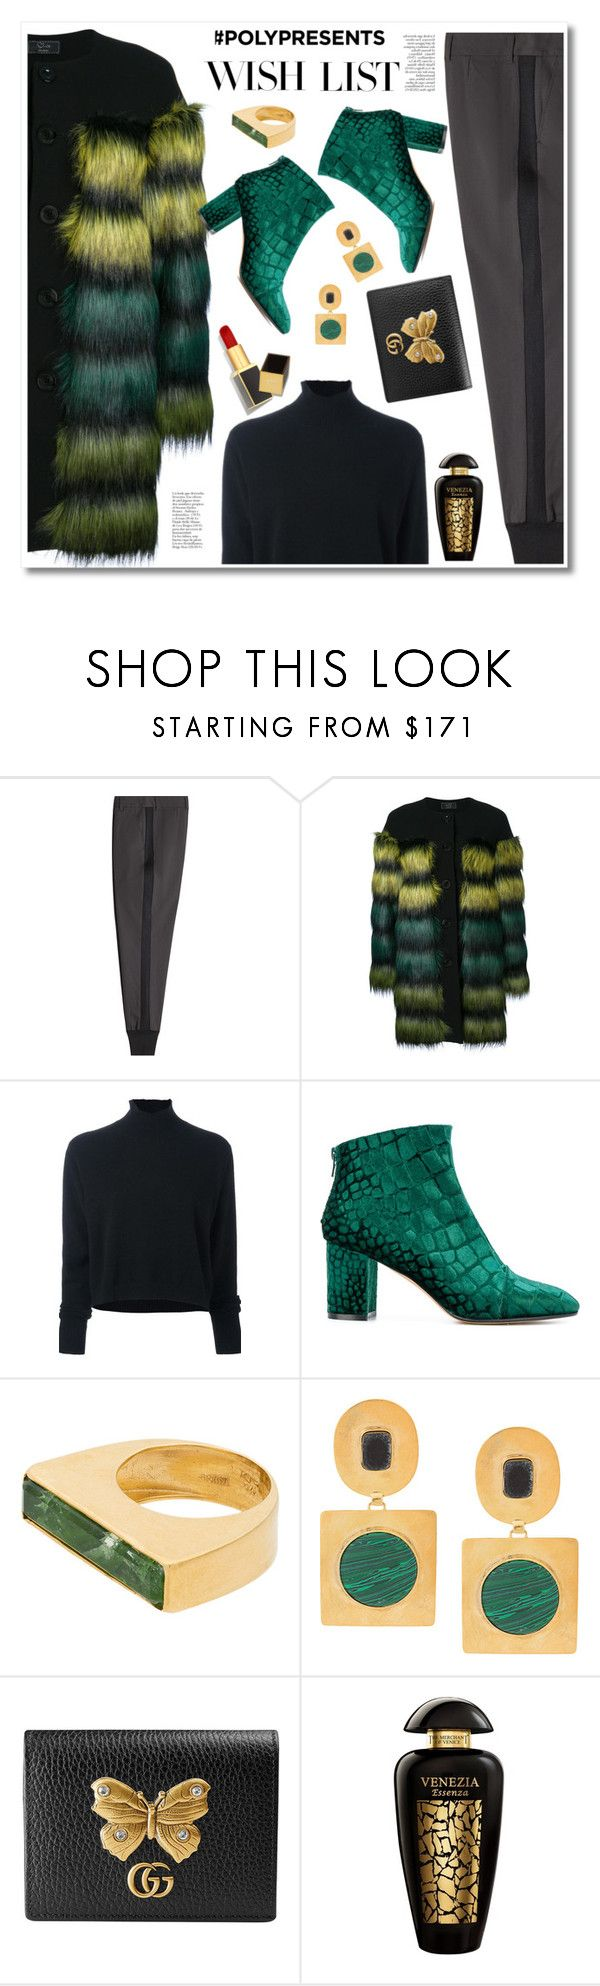 """""""#PolyPresents: Wish List"""" by paculi ❤ liked on Polyvore featuring 3.1 Phillip Lim, KI6? Who Are You?, Le Kasha, Jean-Michel Cazabat, Katerina Makriyianni, Liya, Gucci, The Merchant Of Venice, Tom Ford and contestentry"""